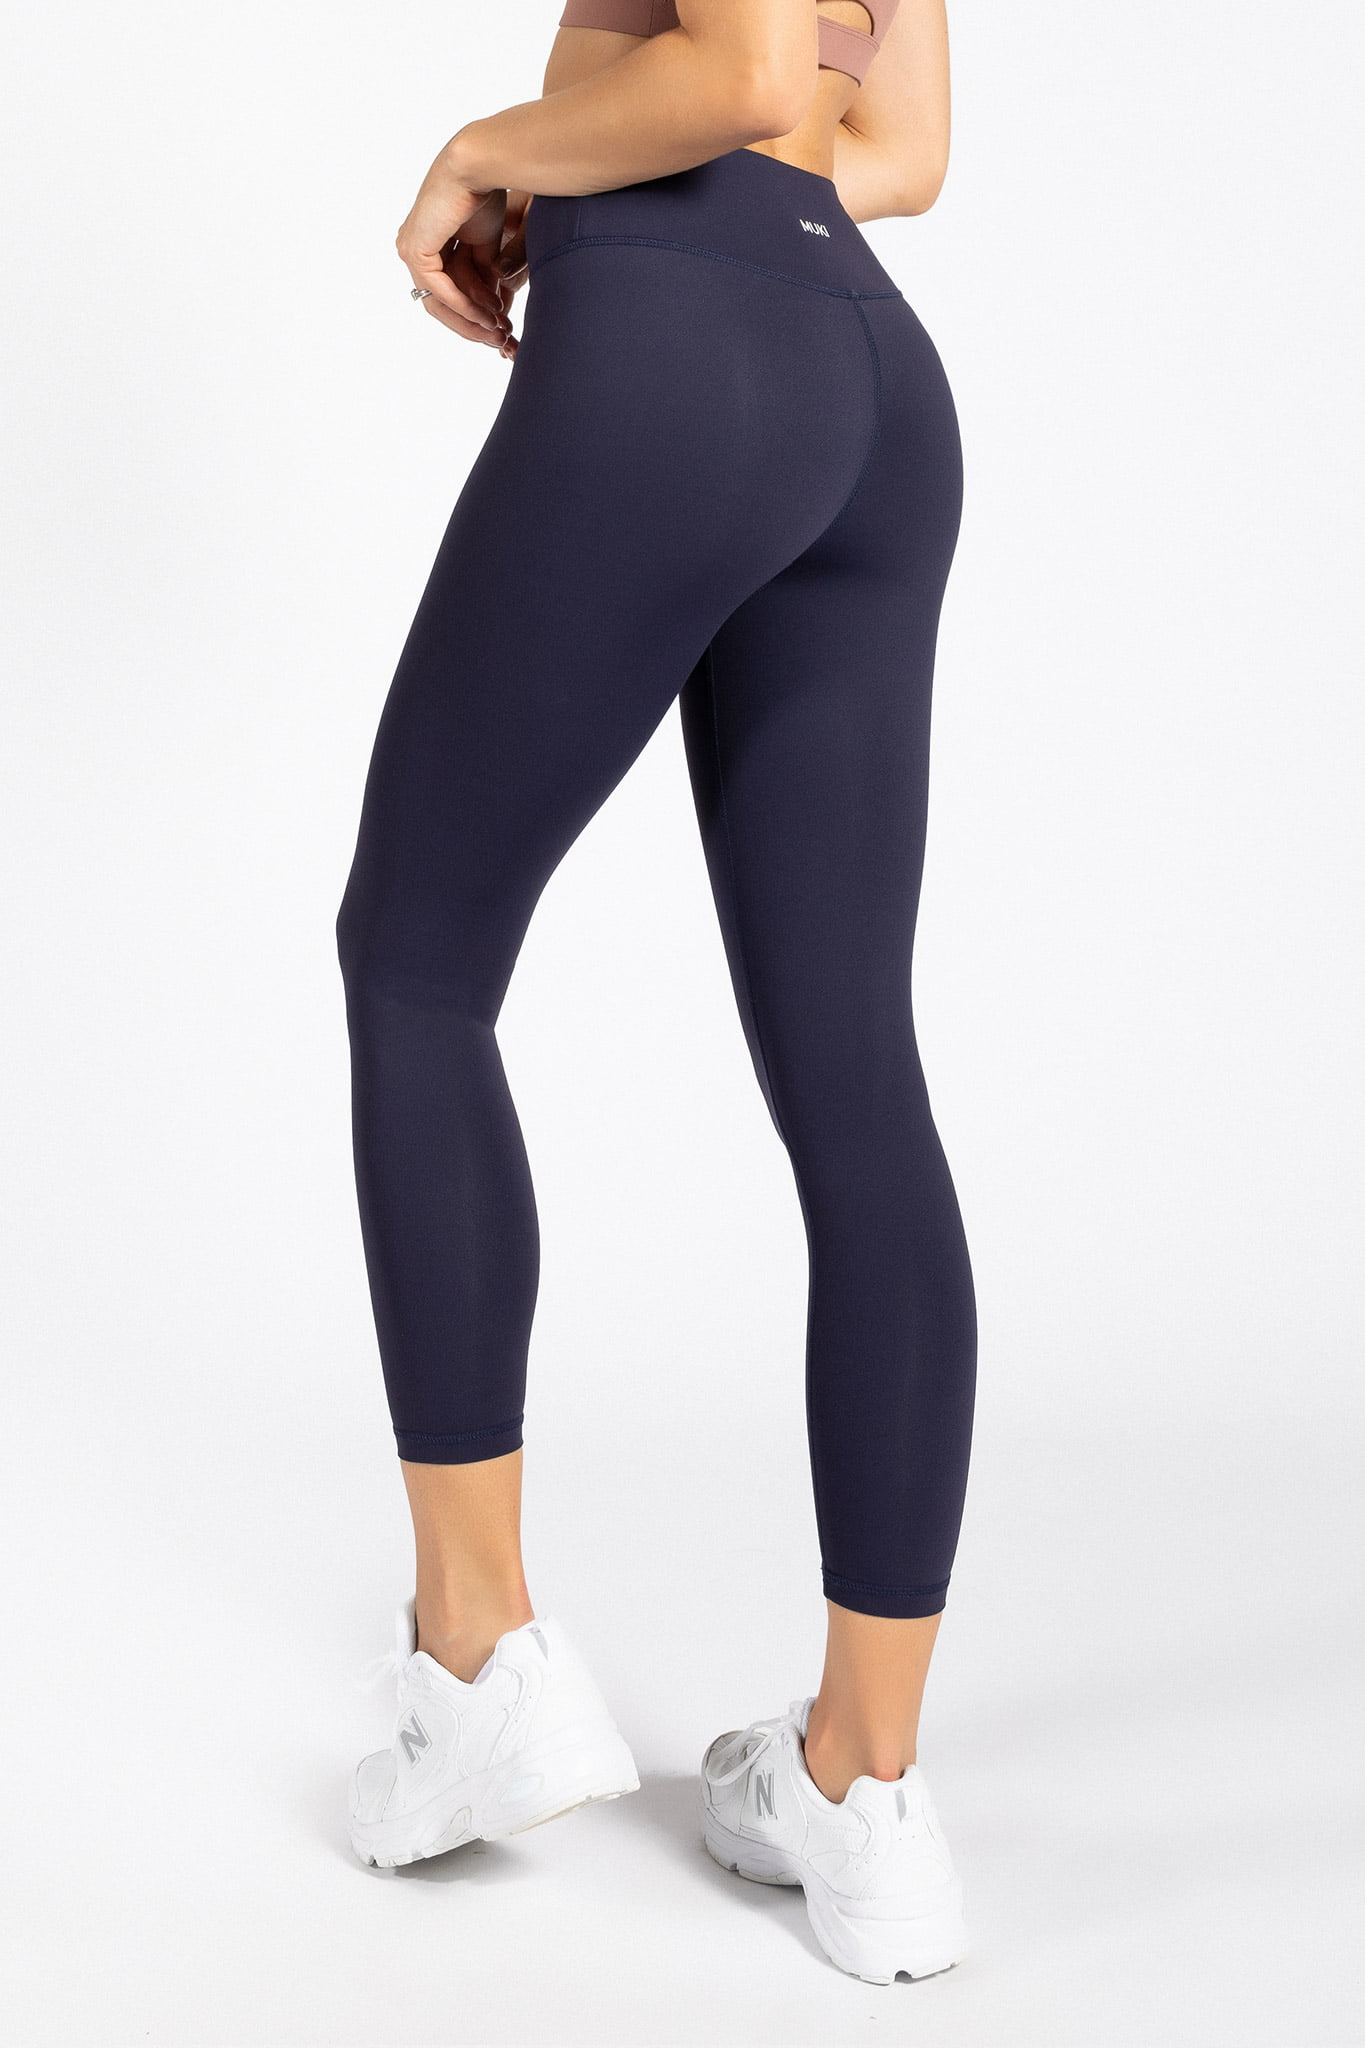 model wearing high-waist 7/8 yoga pant in navy colour